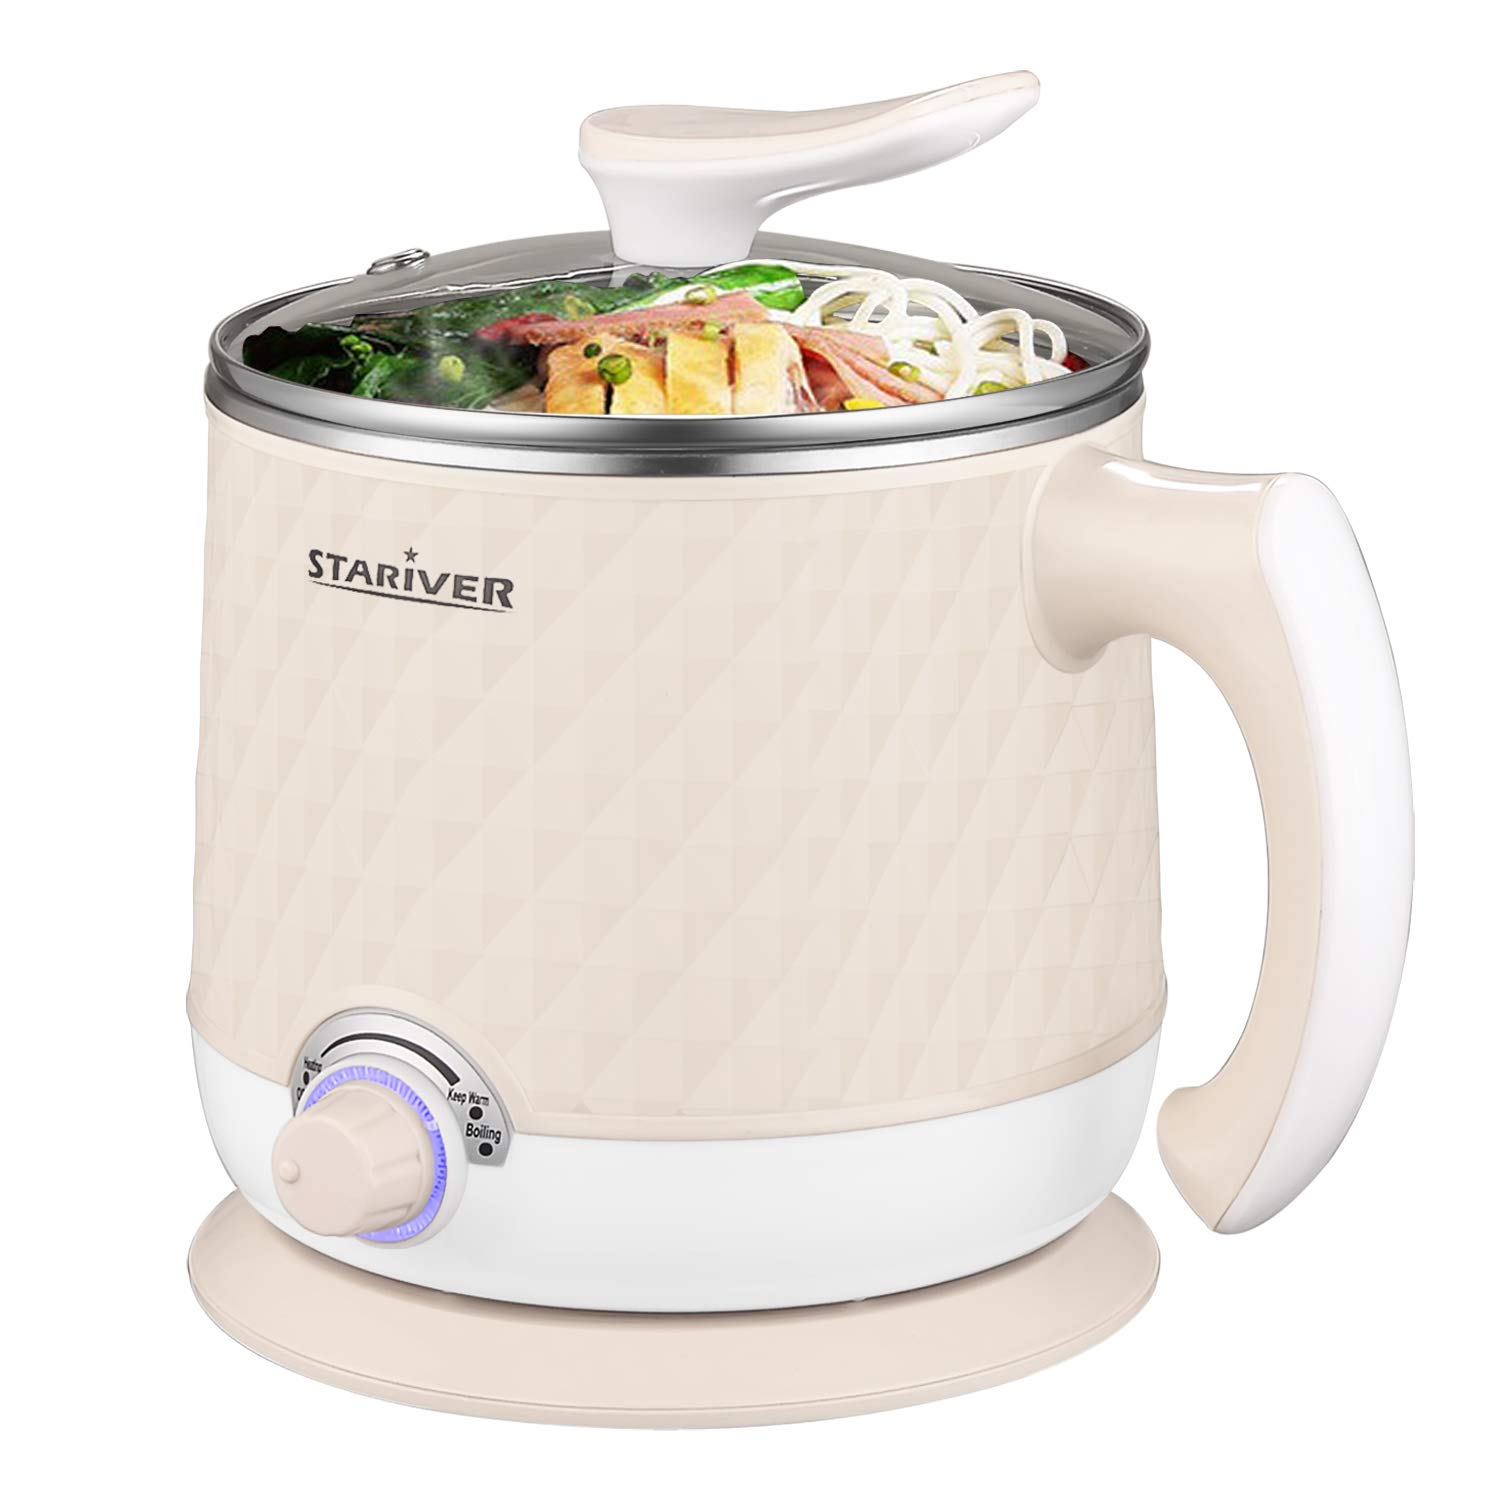 Stariver Electric Hot Pot, Electric Cooker, 1.8L Multi-Functional Mini Pot for Noodles, Soup, Porridge, Dumplings, Eggs, Pasta with Keep Warm Function, Over Heating and Boil Dry Protection, Beige